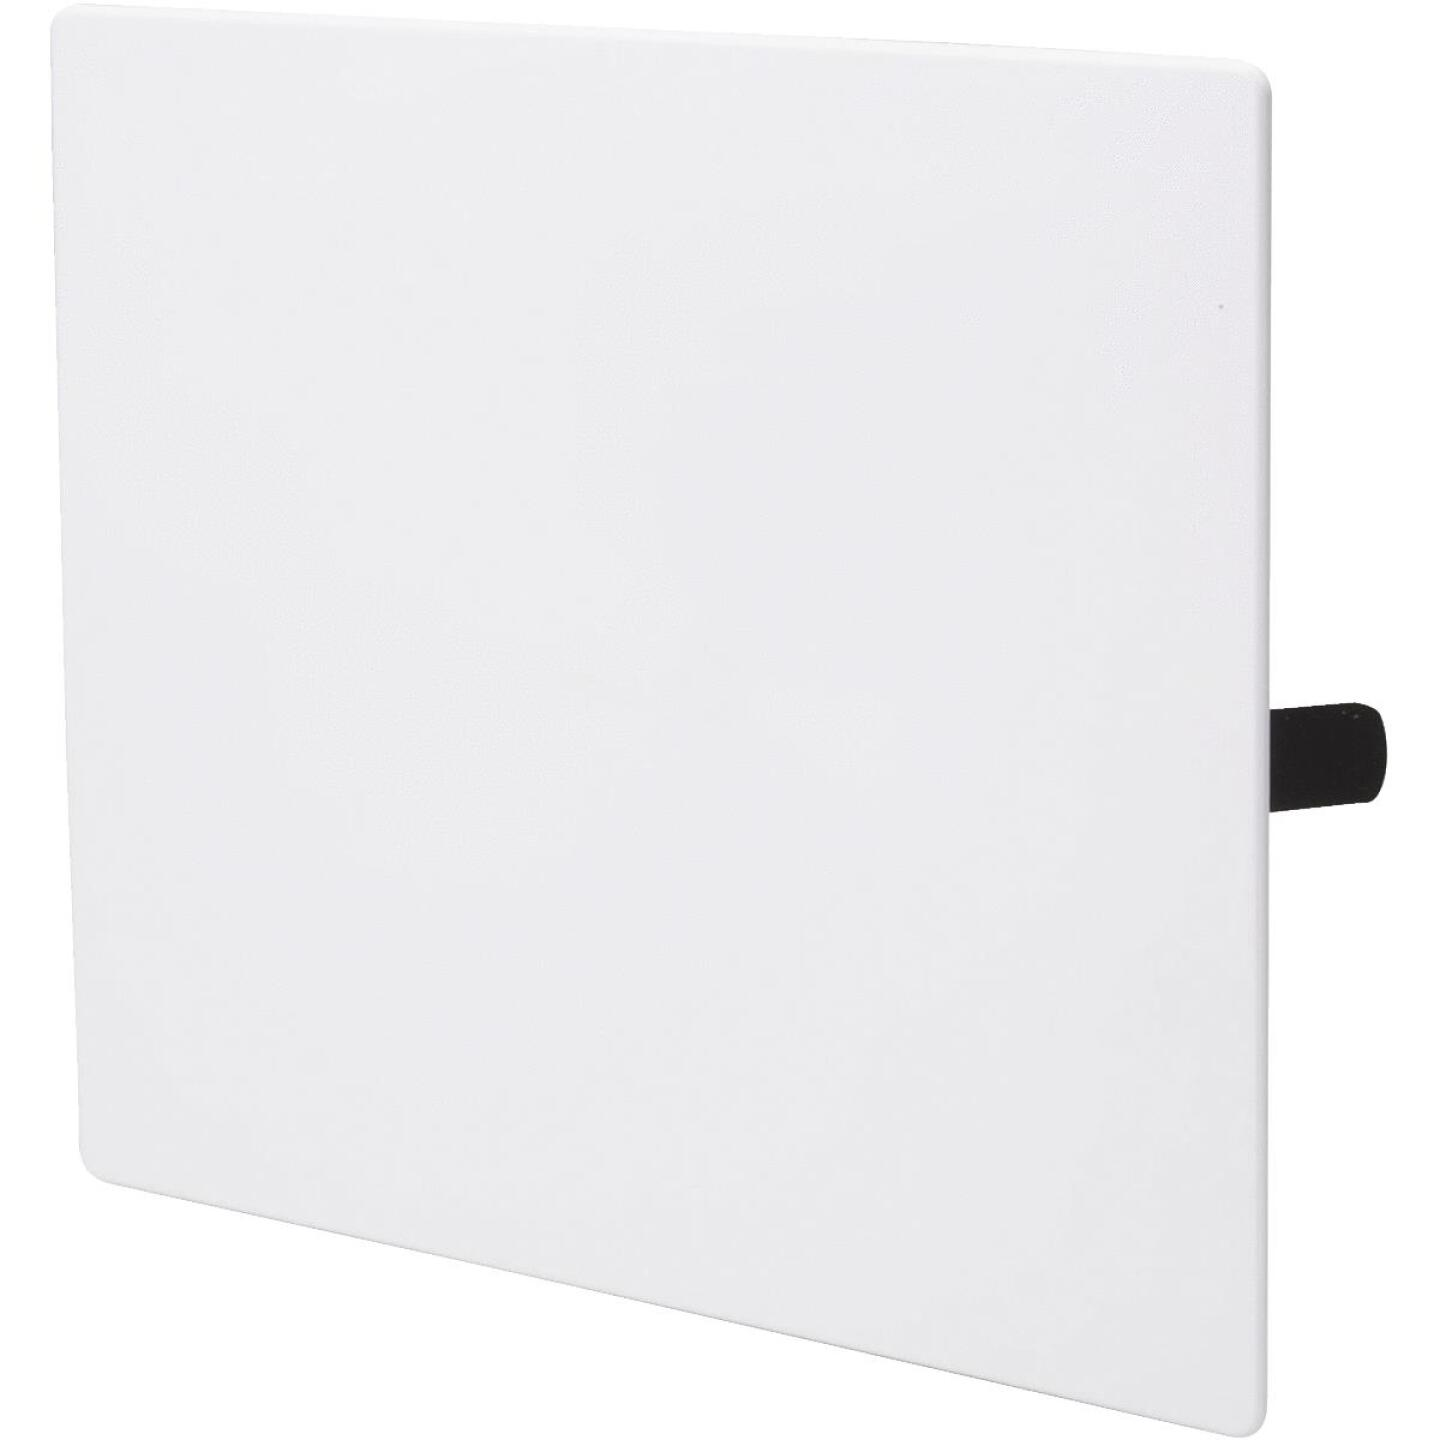 B&K 14 In. x 14 In. White Plastic Wall Access Panel Image 1